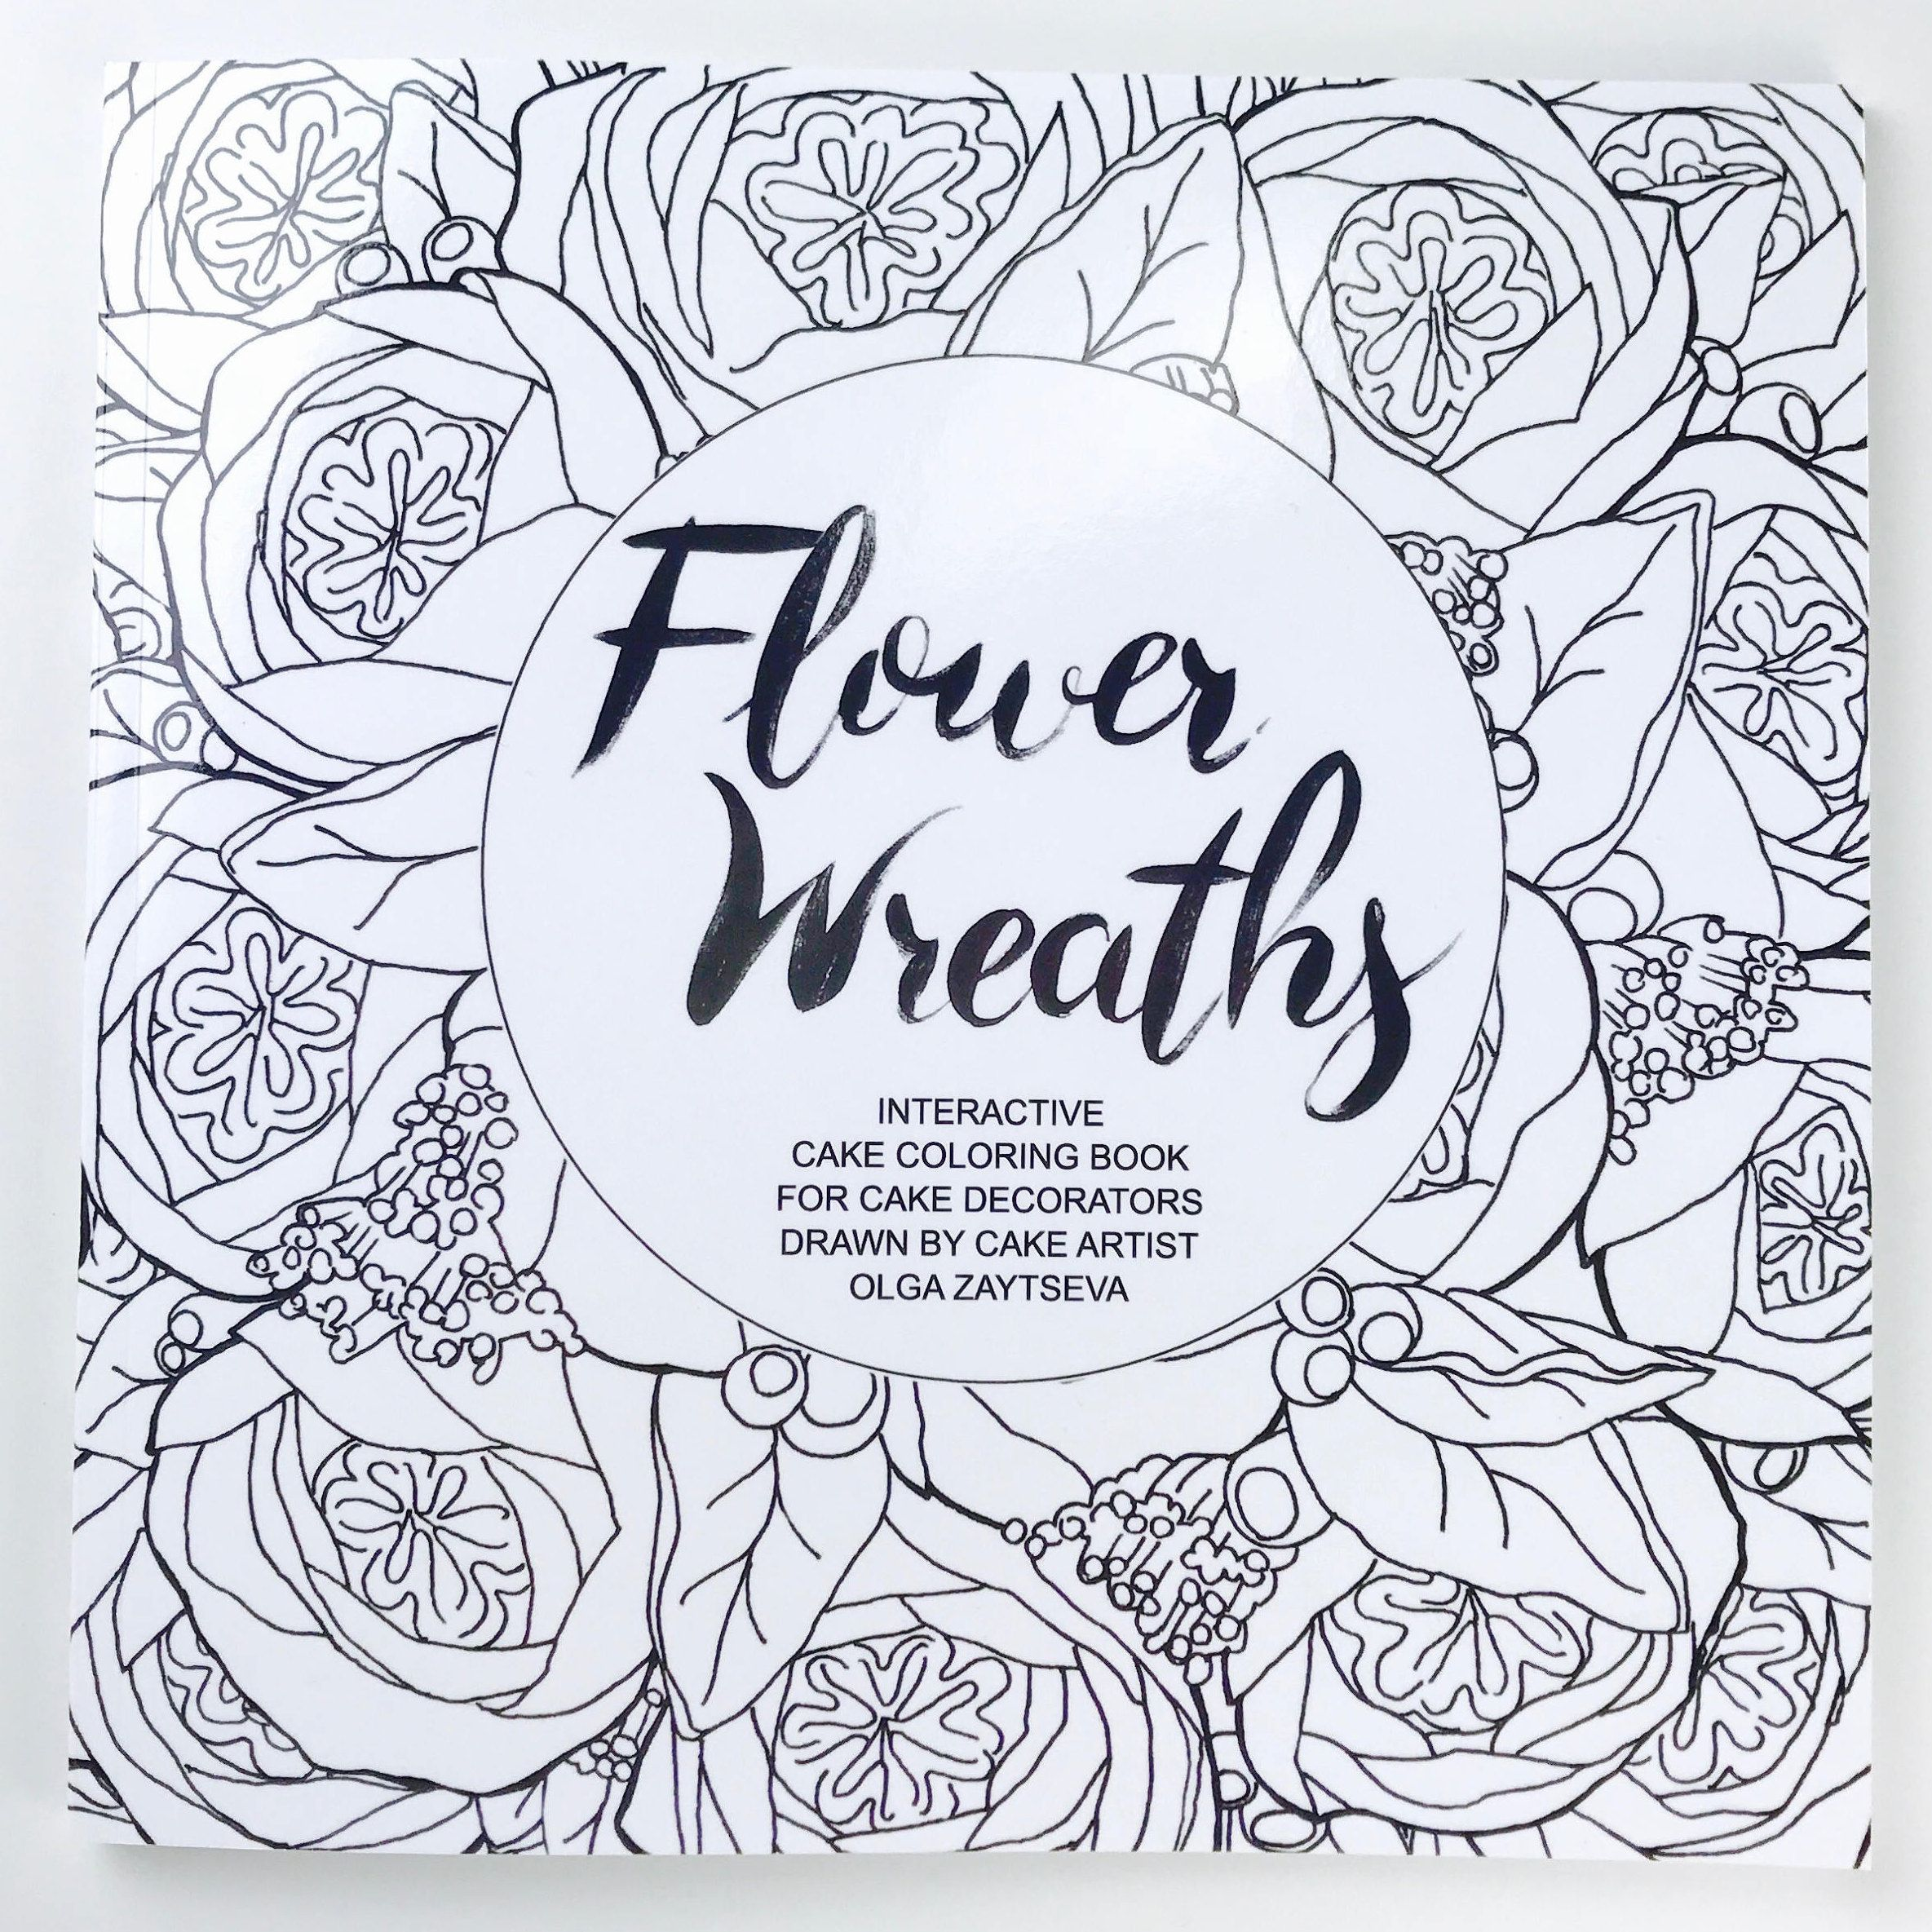 Flower wreaths an interactive cake coloring book for adults and cake ...